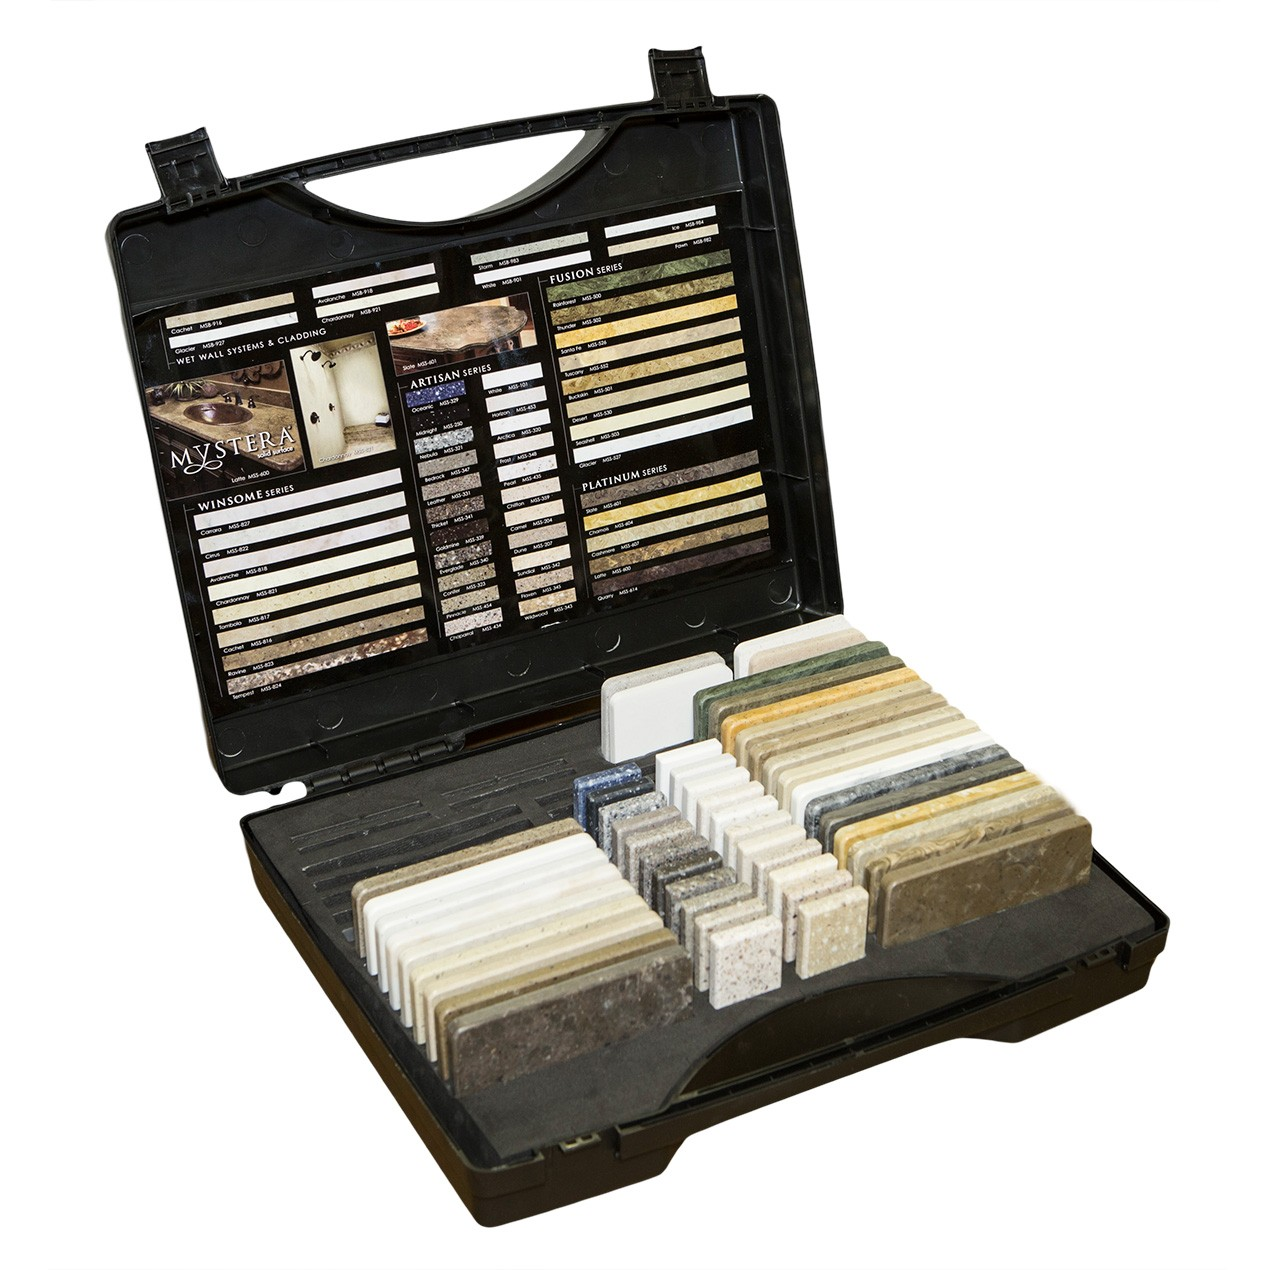 mystera full line sample box all colors in a carrying case